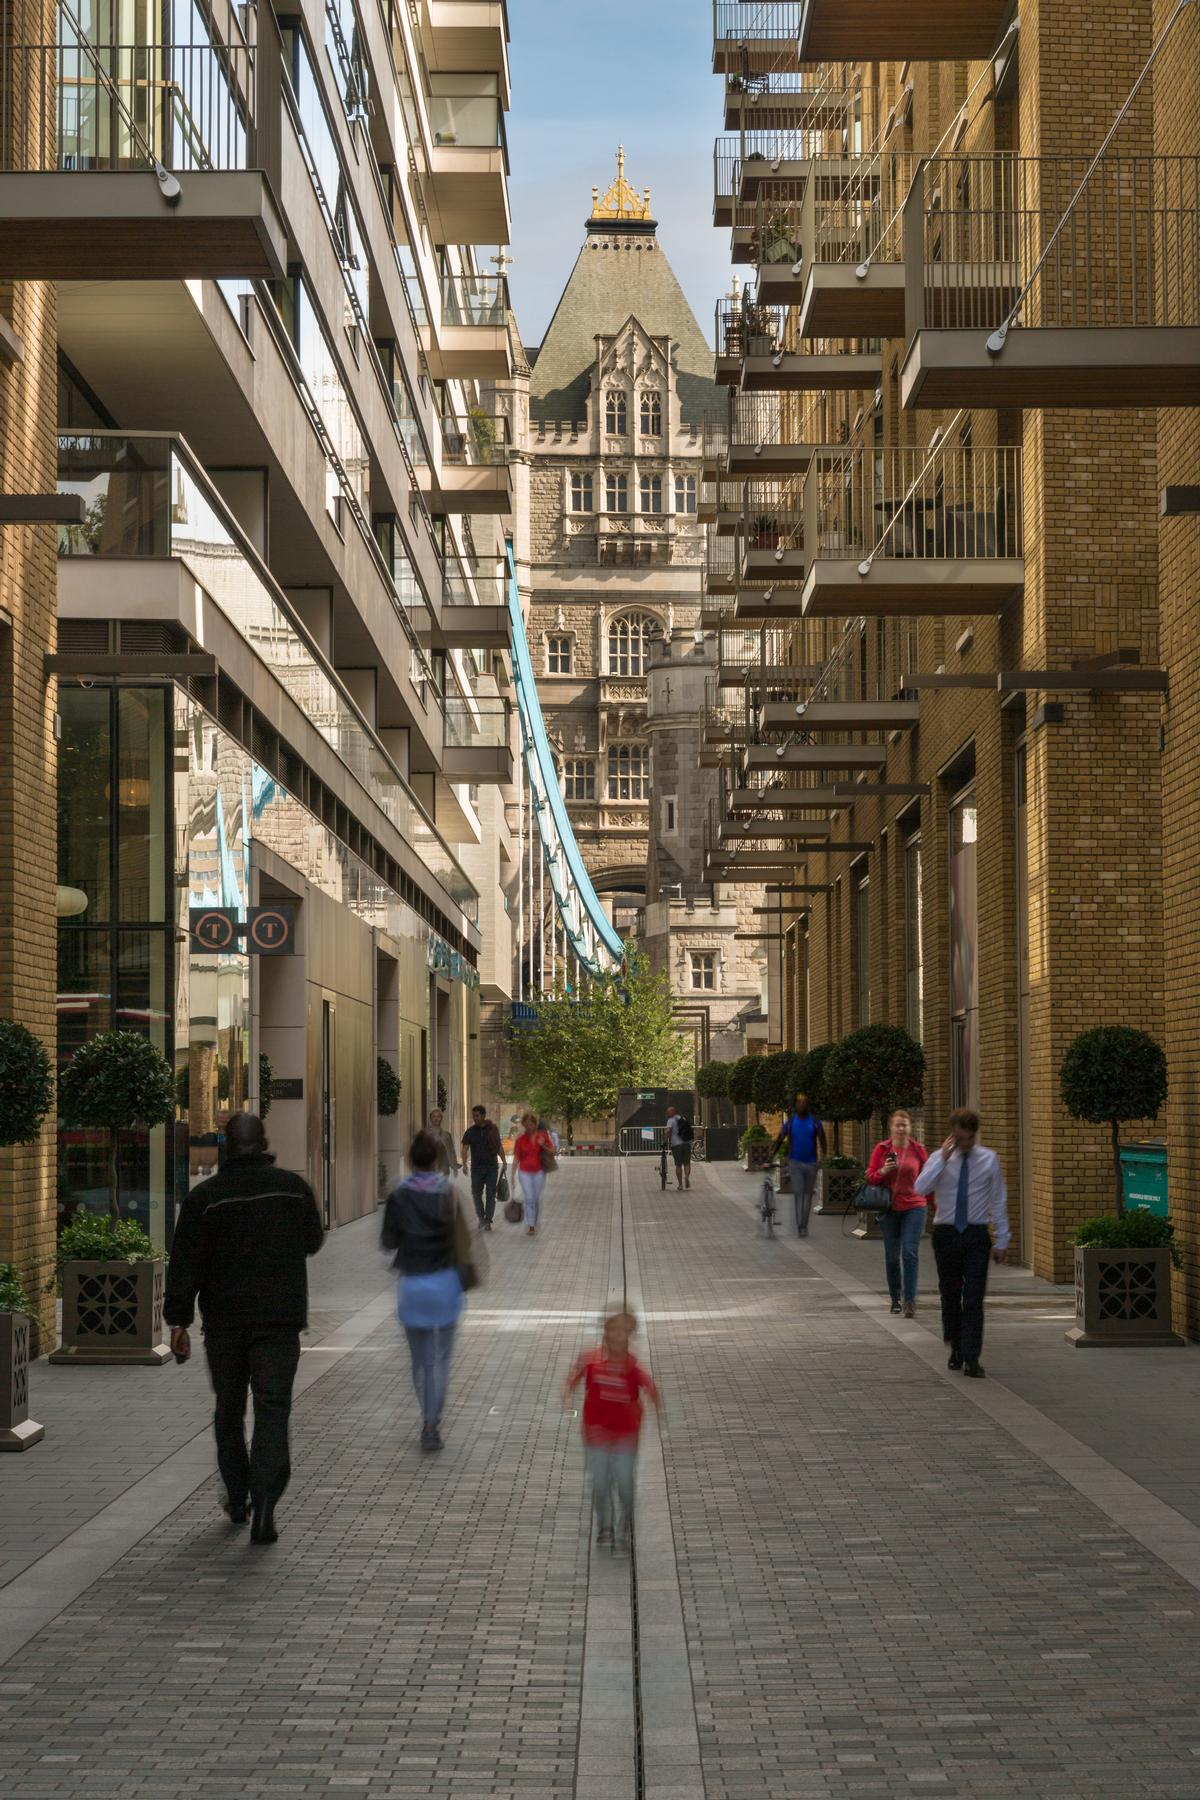 Pedestrians can walk through the development to reach Tower Bridge / James Jones